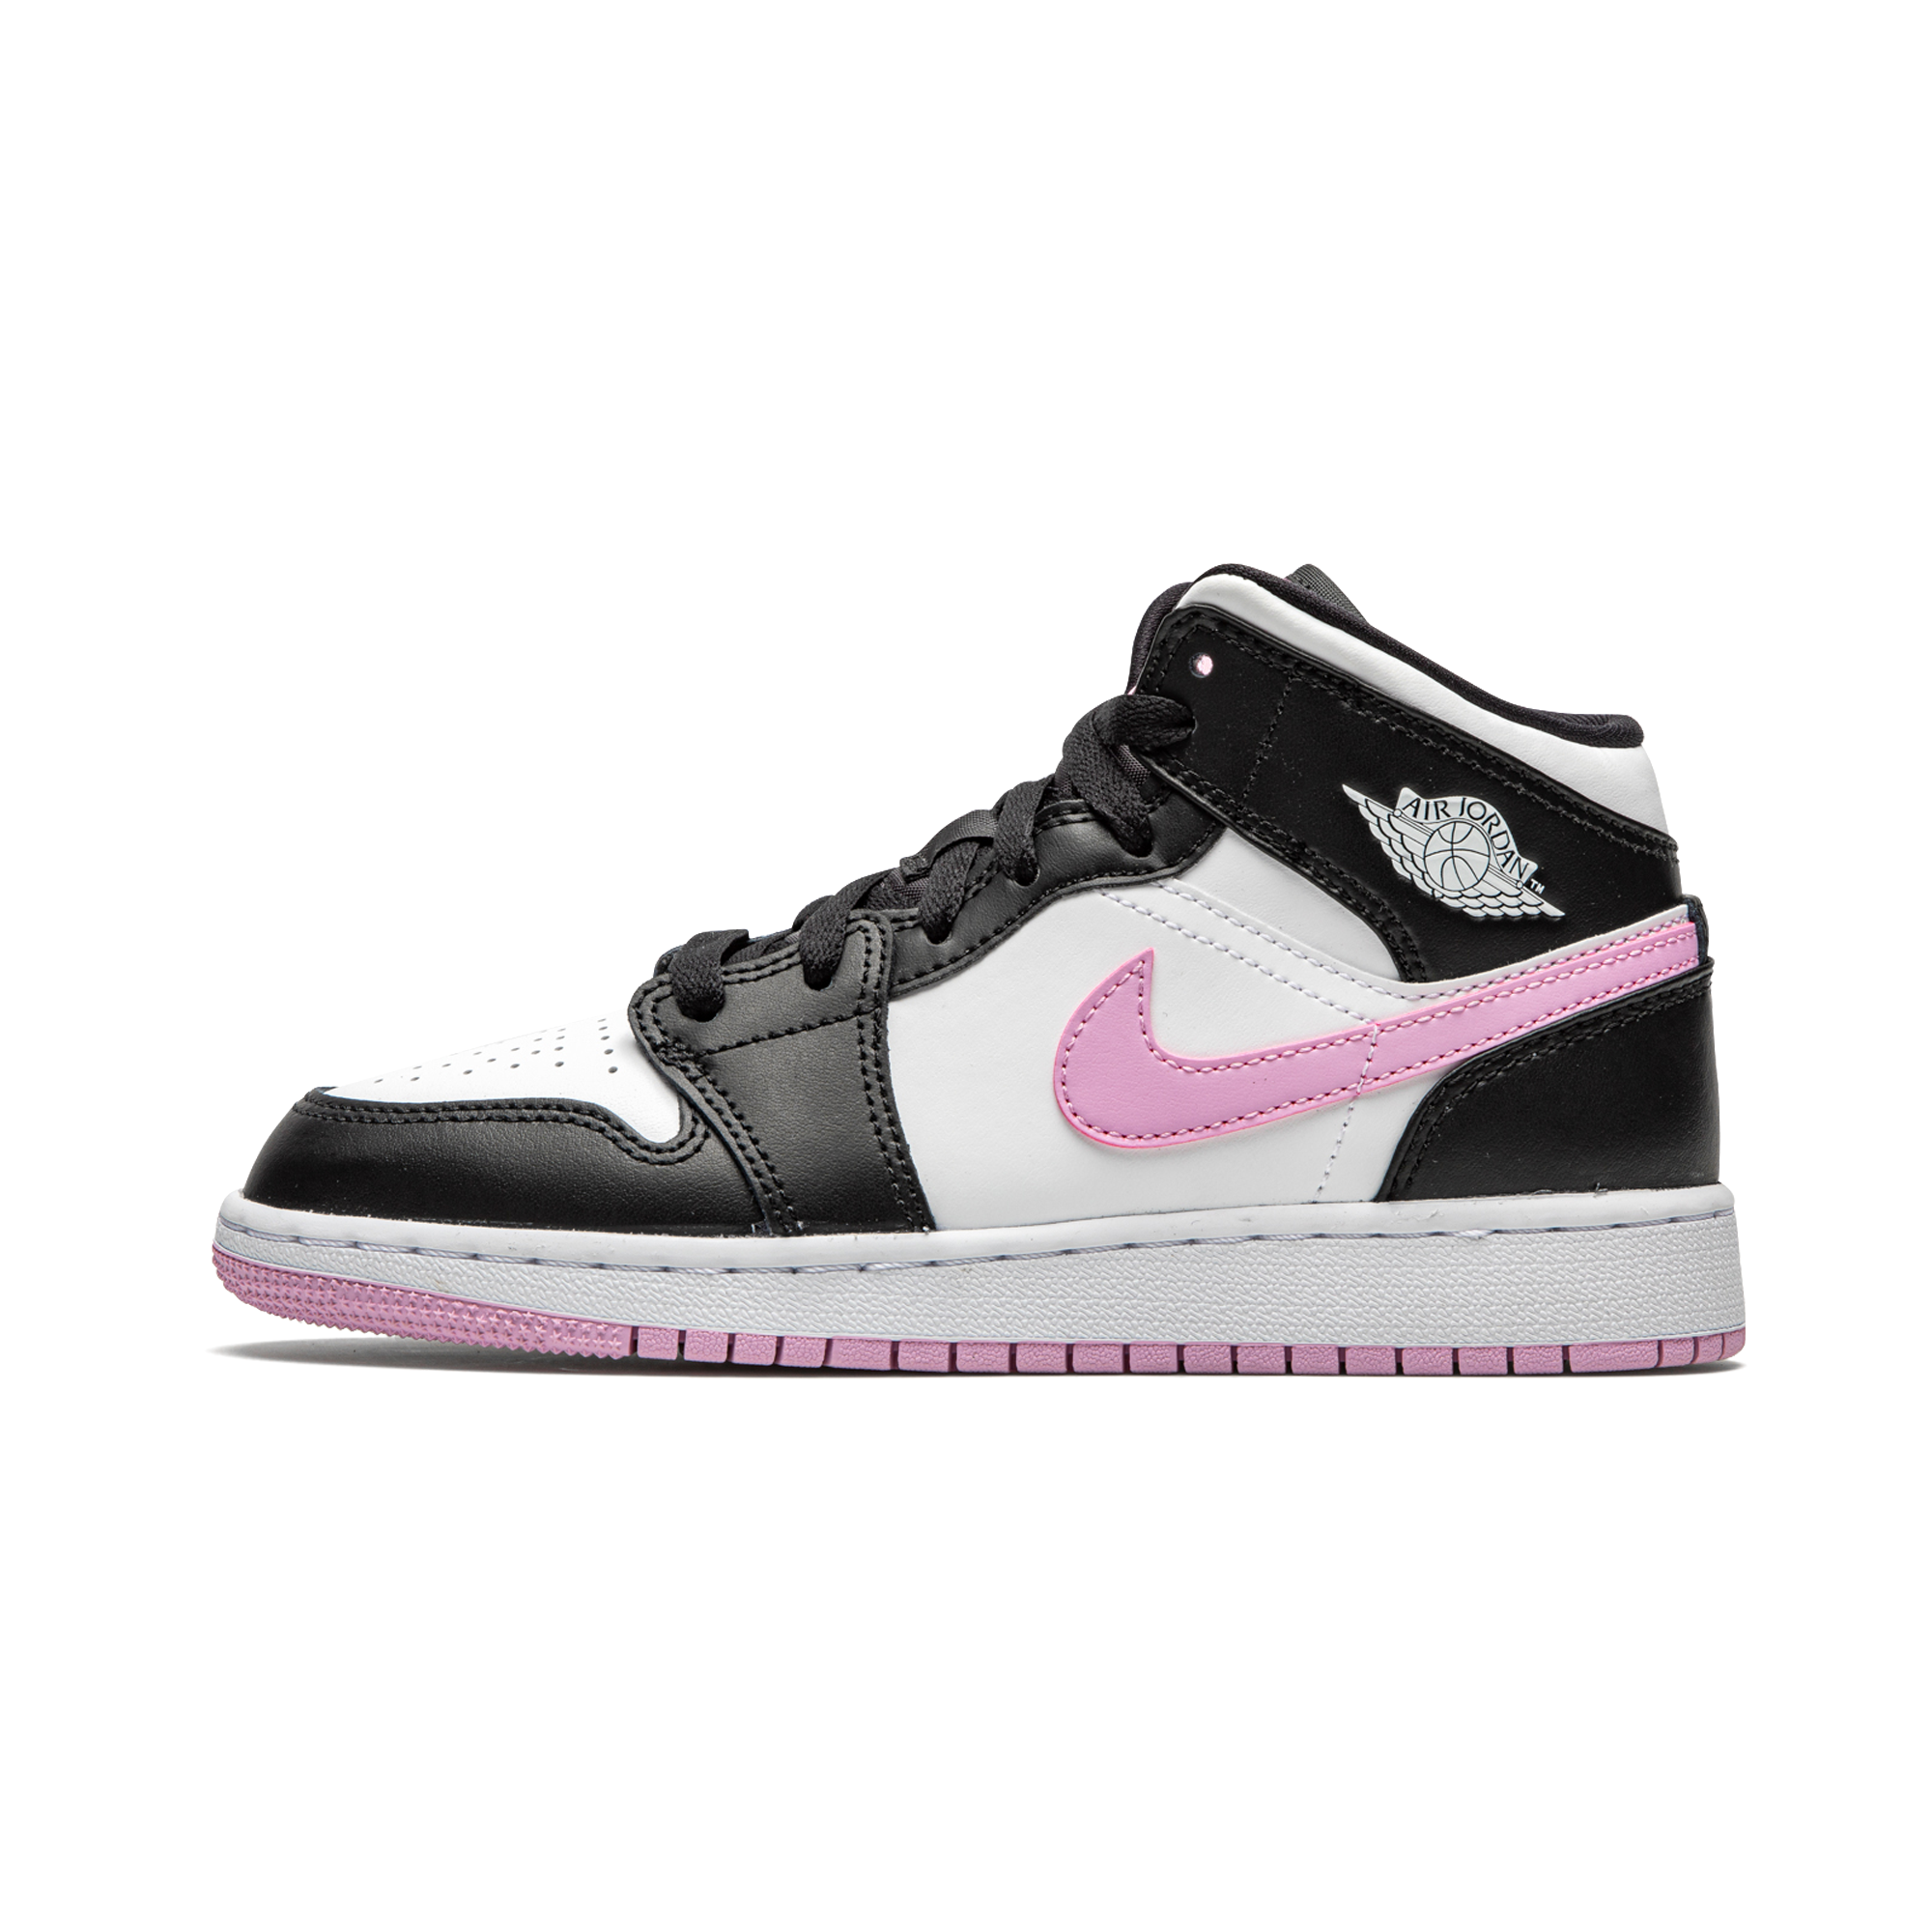 Air Jordan 1 MID -  Arctic Pink Womens (GS)